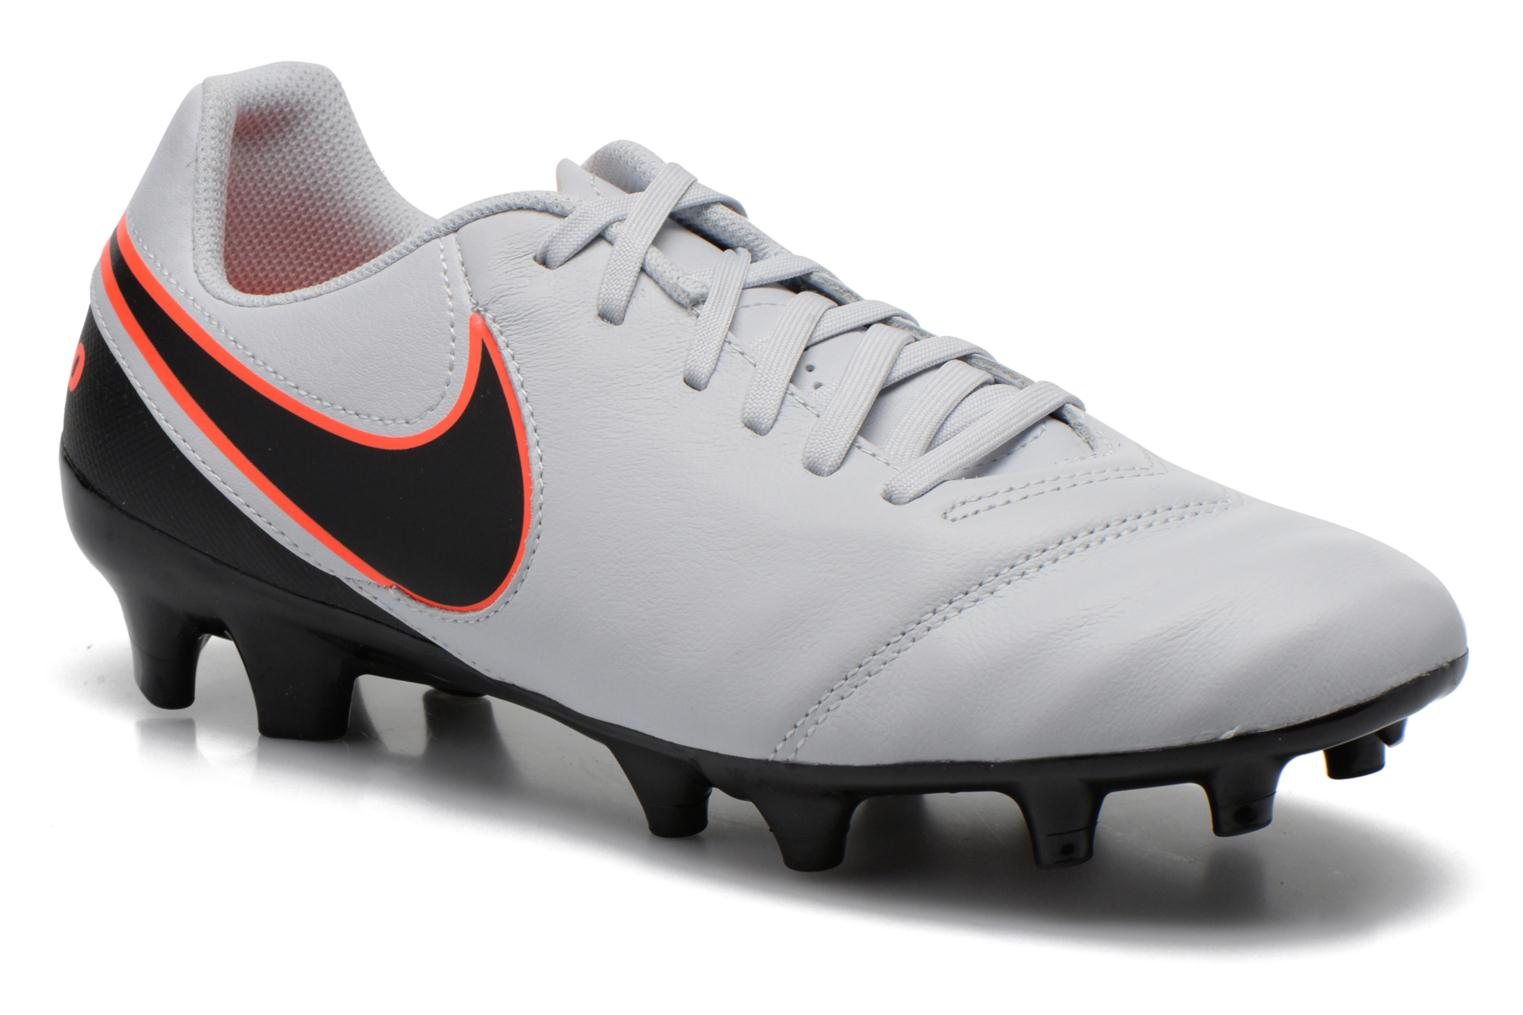 Tiempo Genio II Leather Fg by Nike